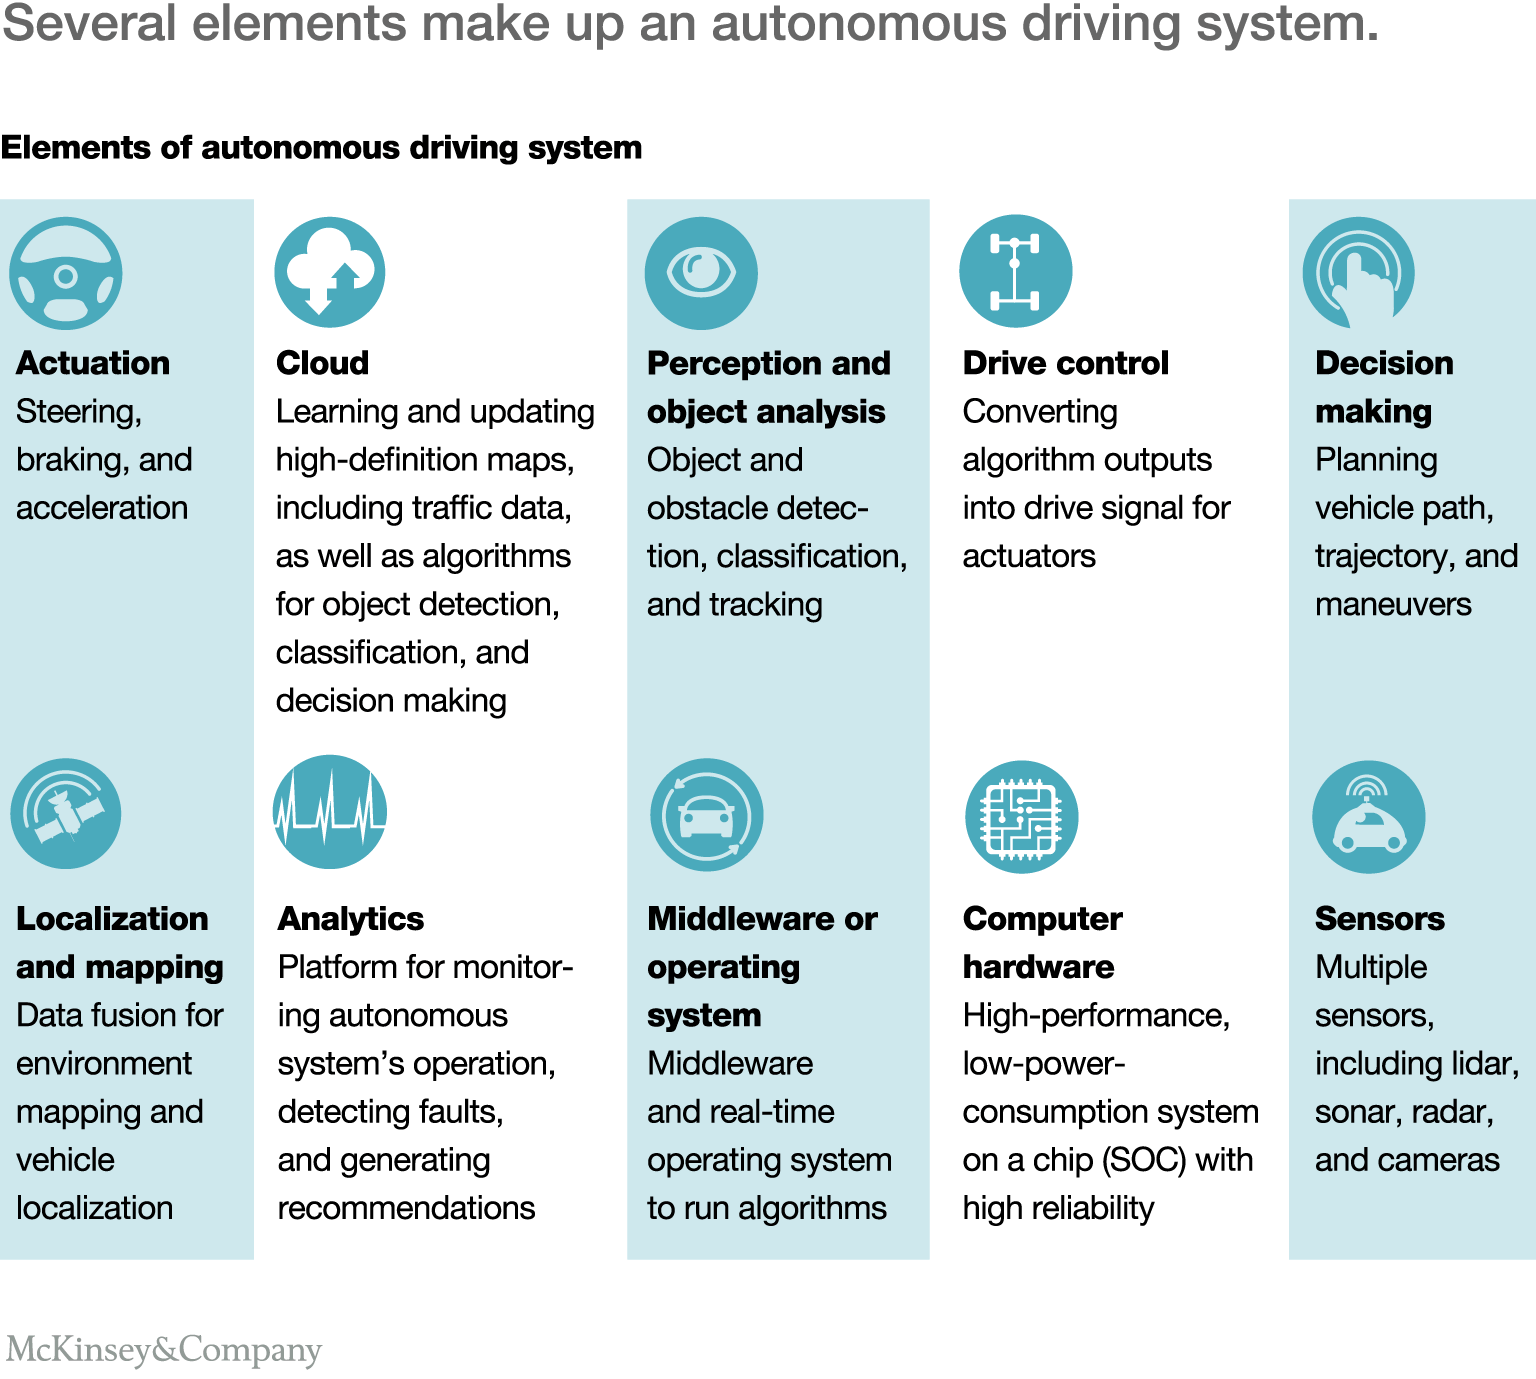 Elements of autonomous driving system including analytics decision making object analysis localization